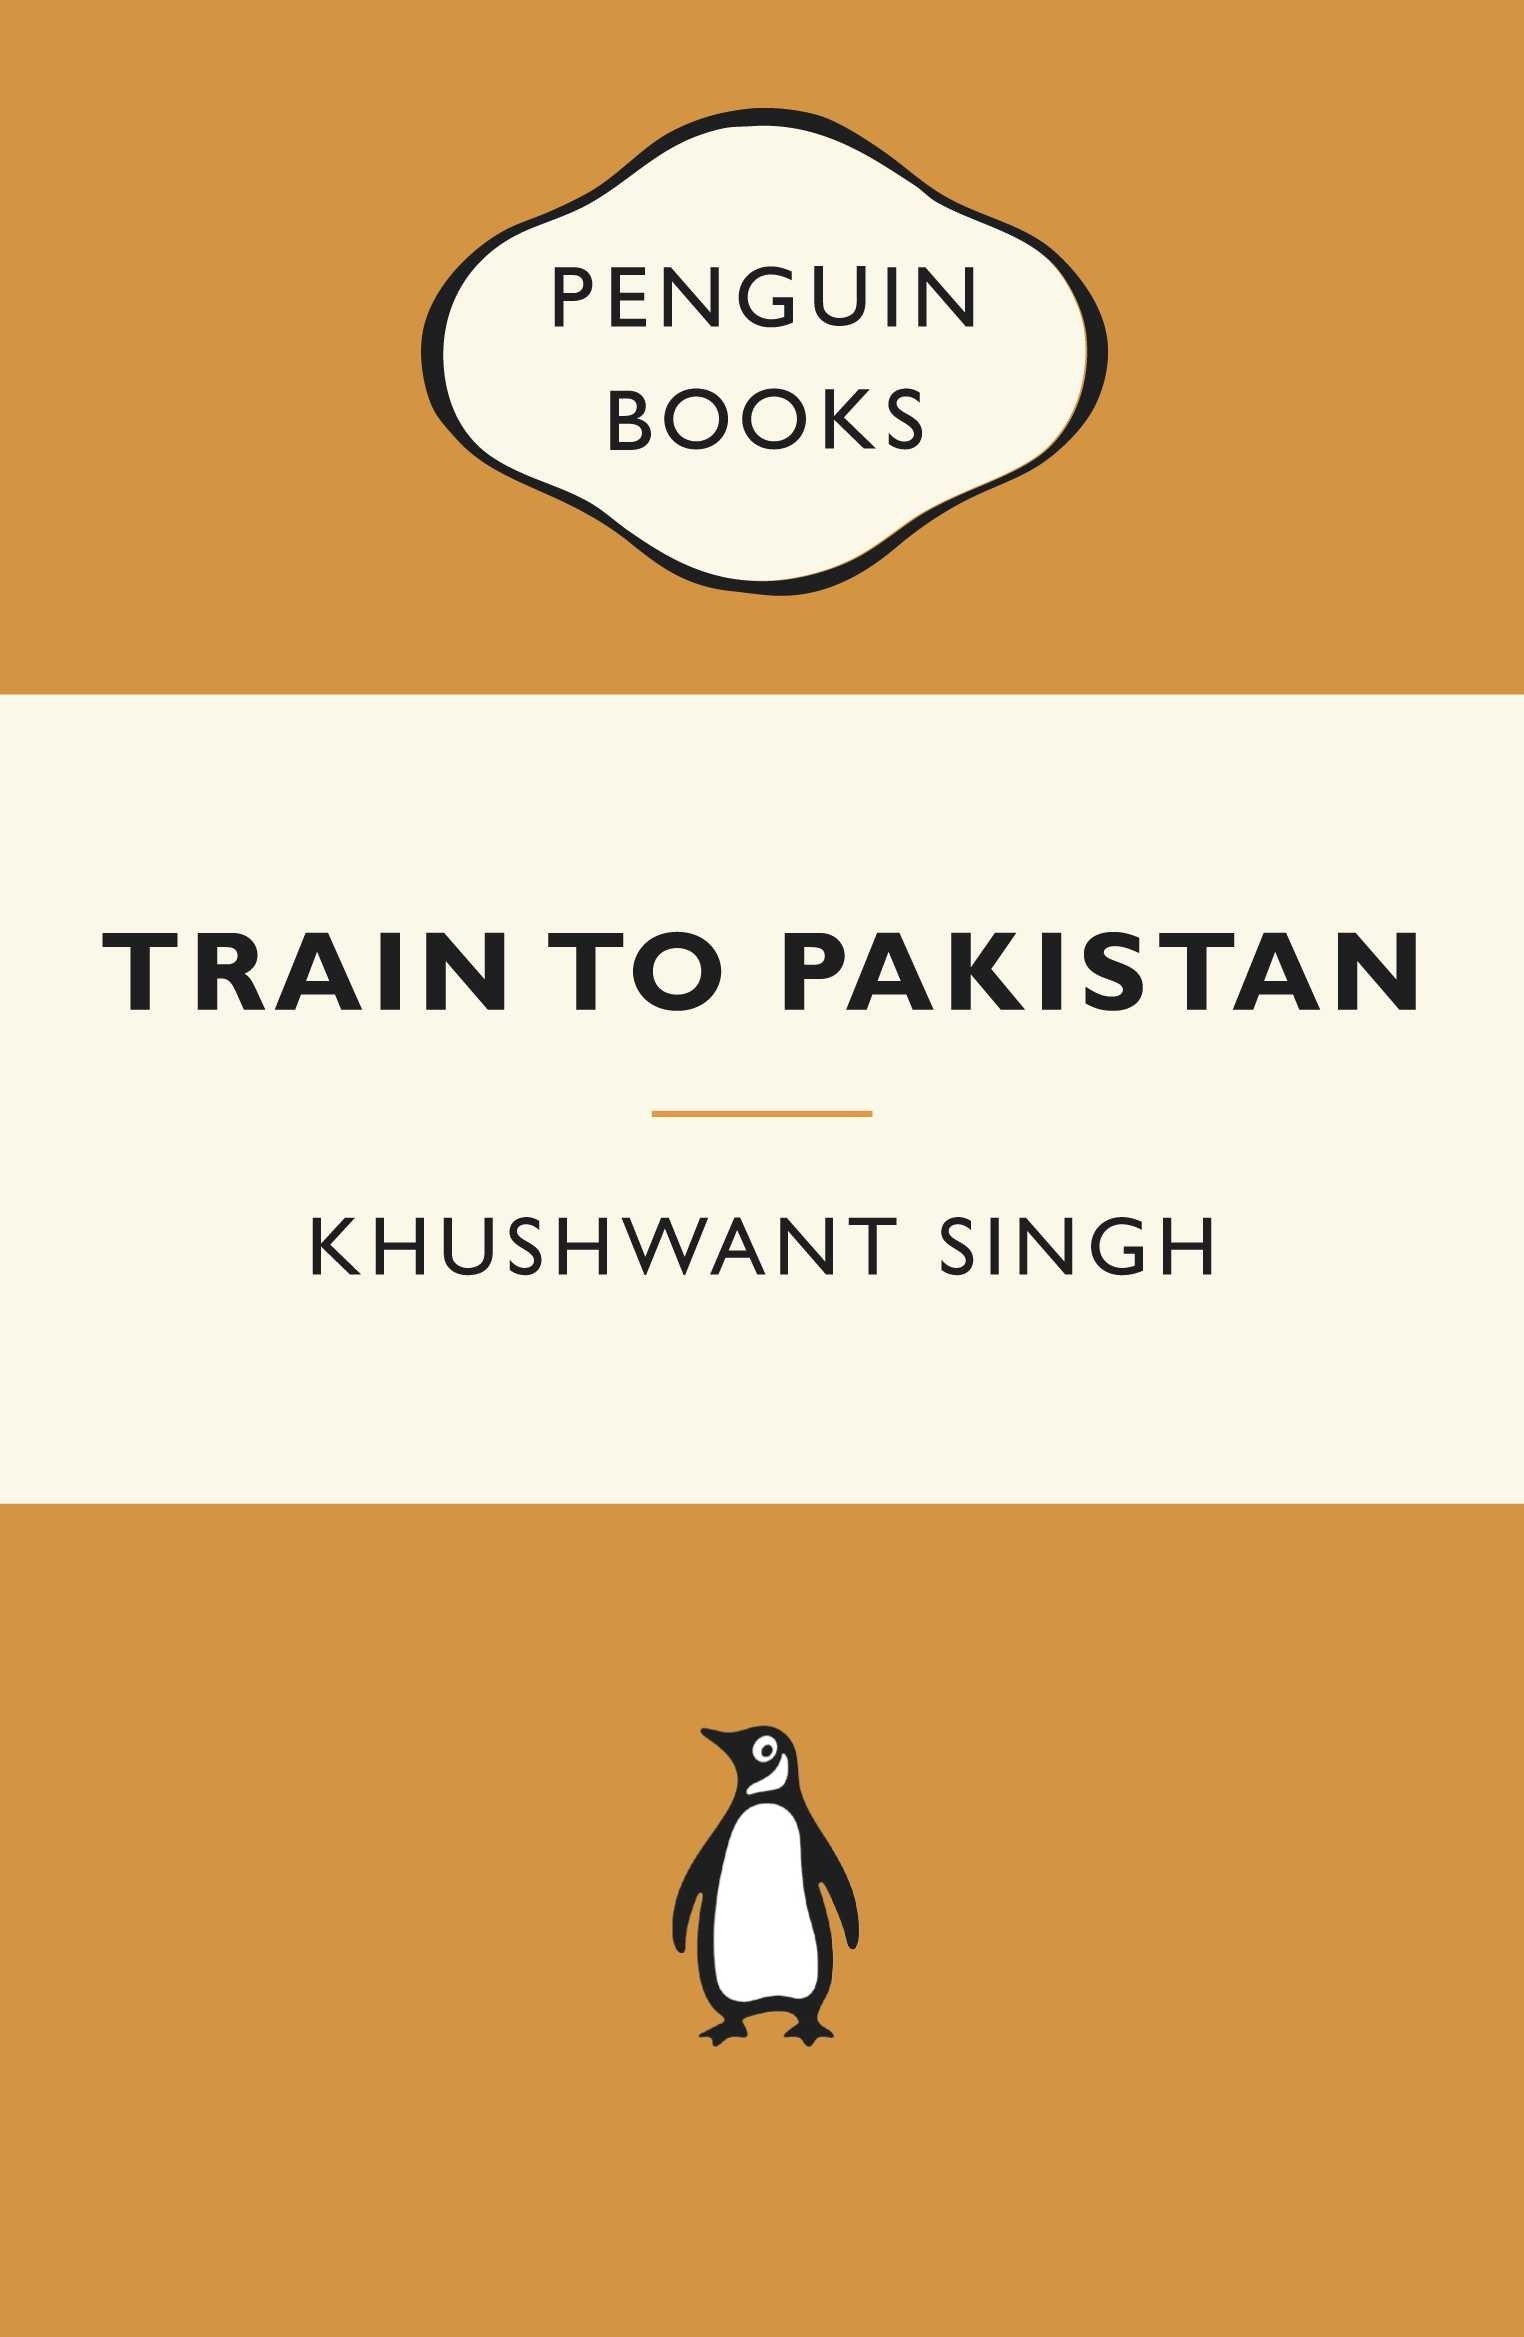 train to pakistan Train to pakistan is the story of this isolated village that is plunged into the abyss of religious hate it is also the story of a sikh boy and a muslim girl whose love endured and transcends the ravages of war.